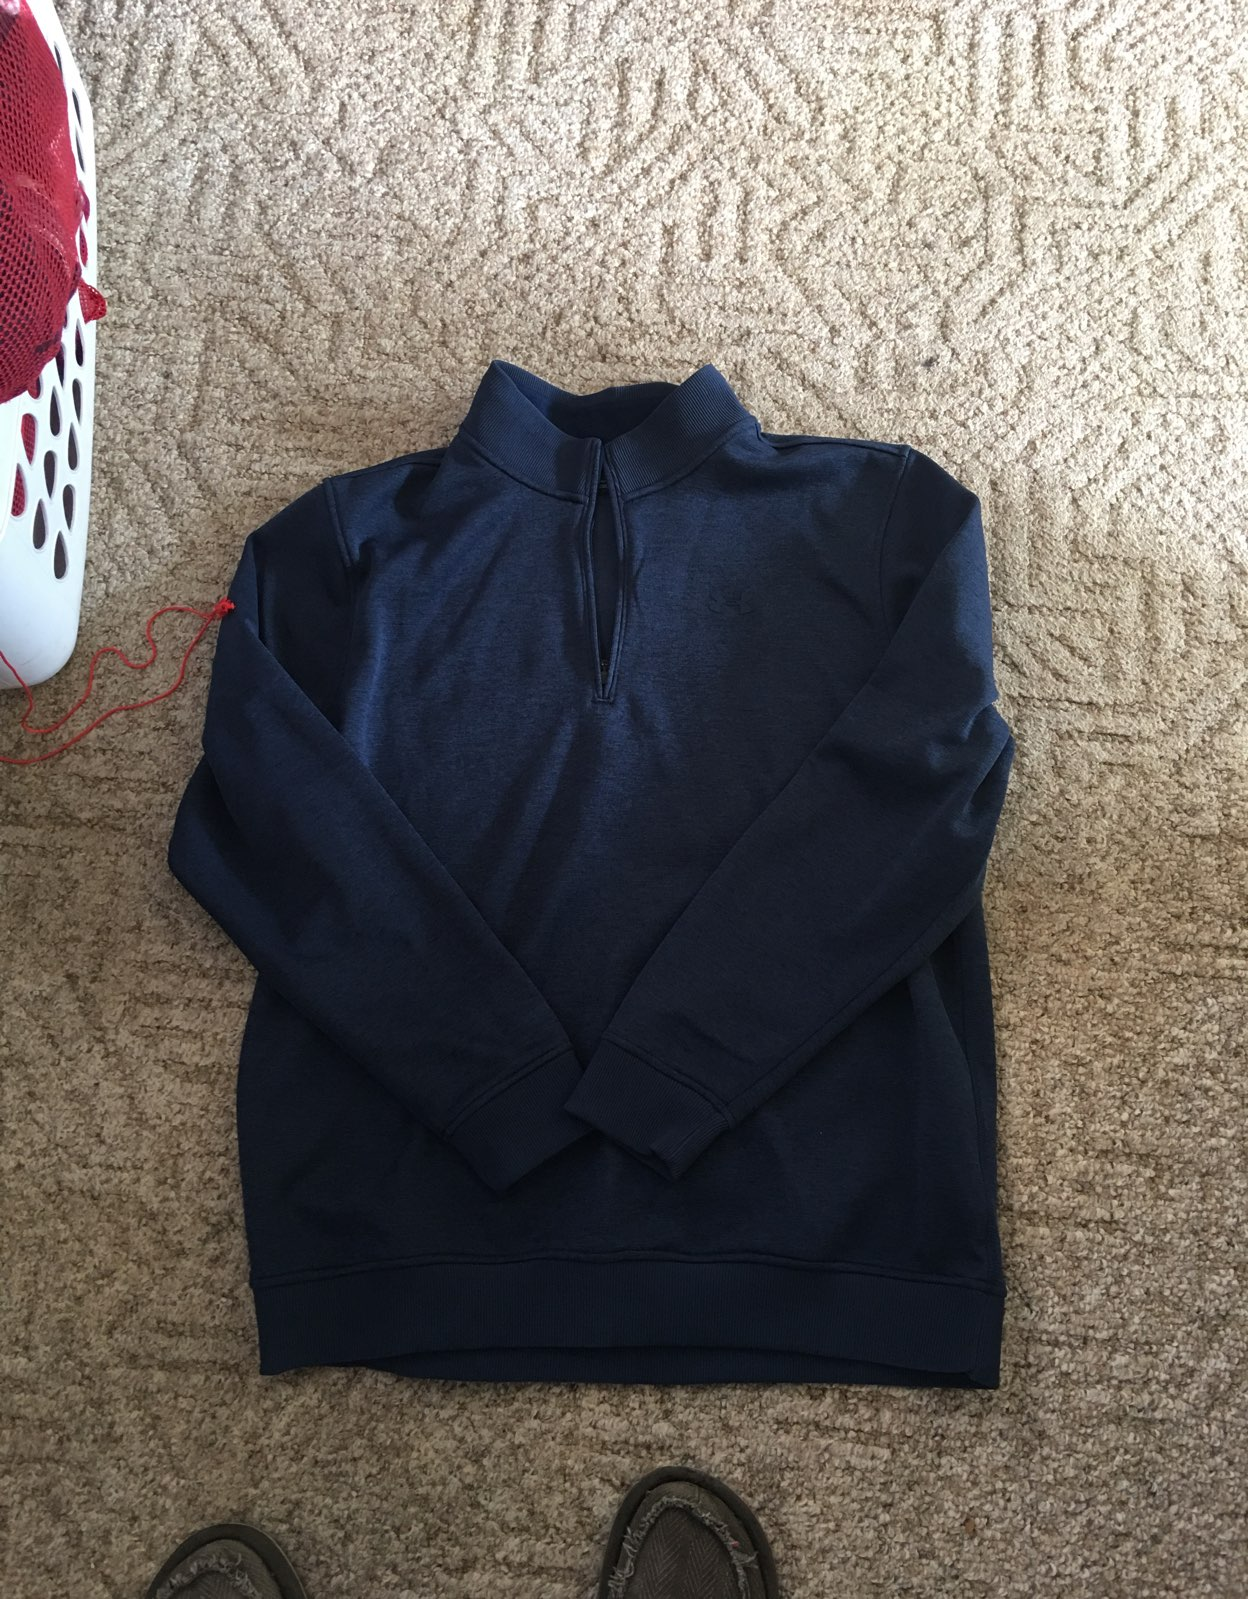 1/4 ZIP Underarmour Cold gear Pull Over